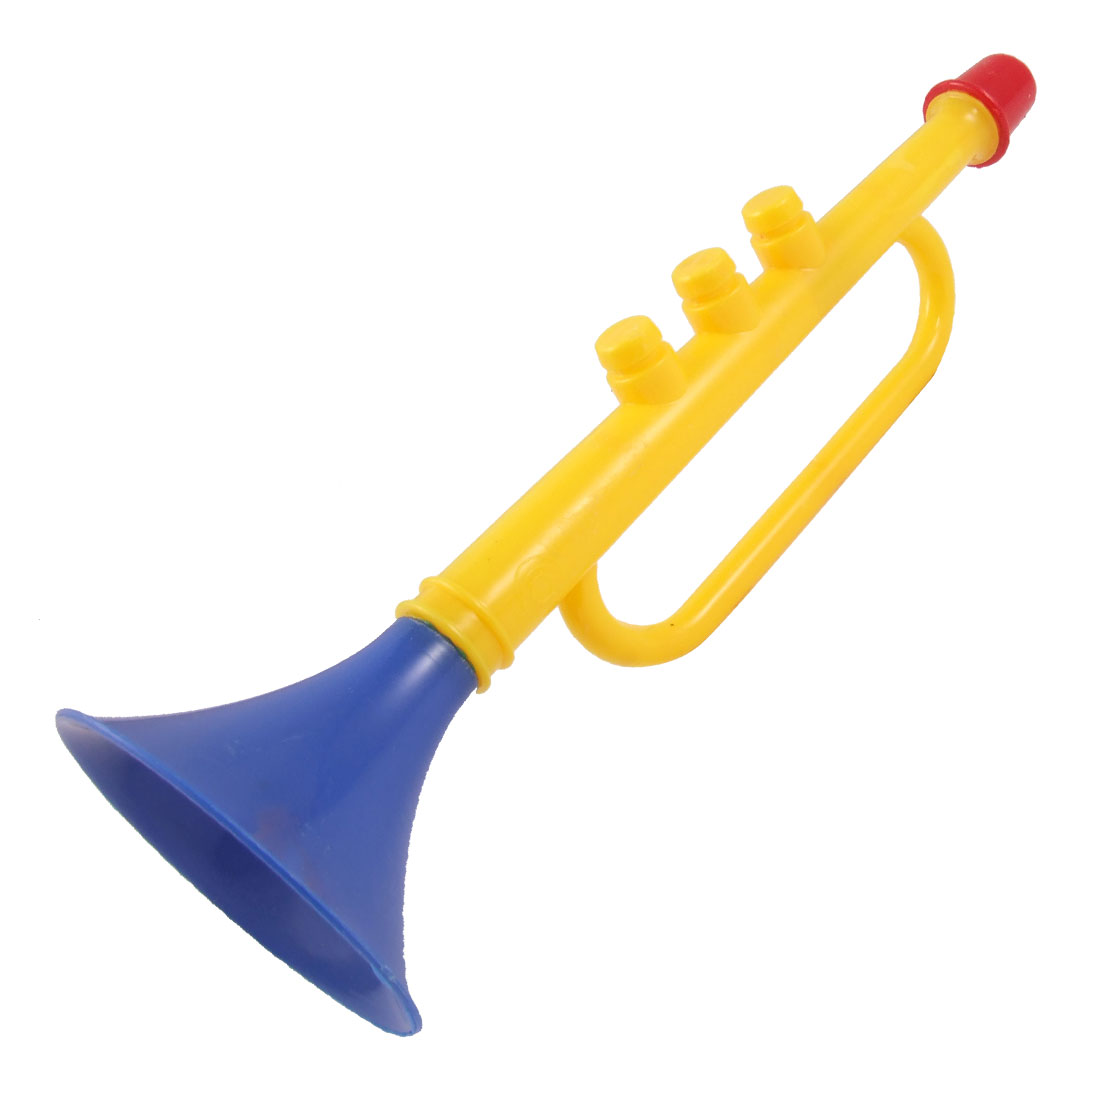 Plastic Match Horn Trumpet Toy Blue Yellow for Children